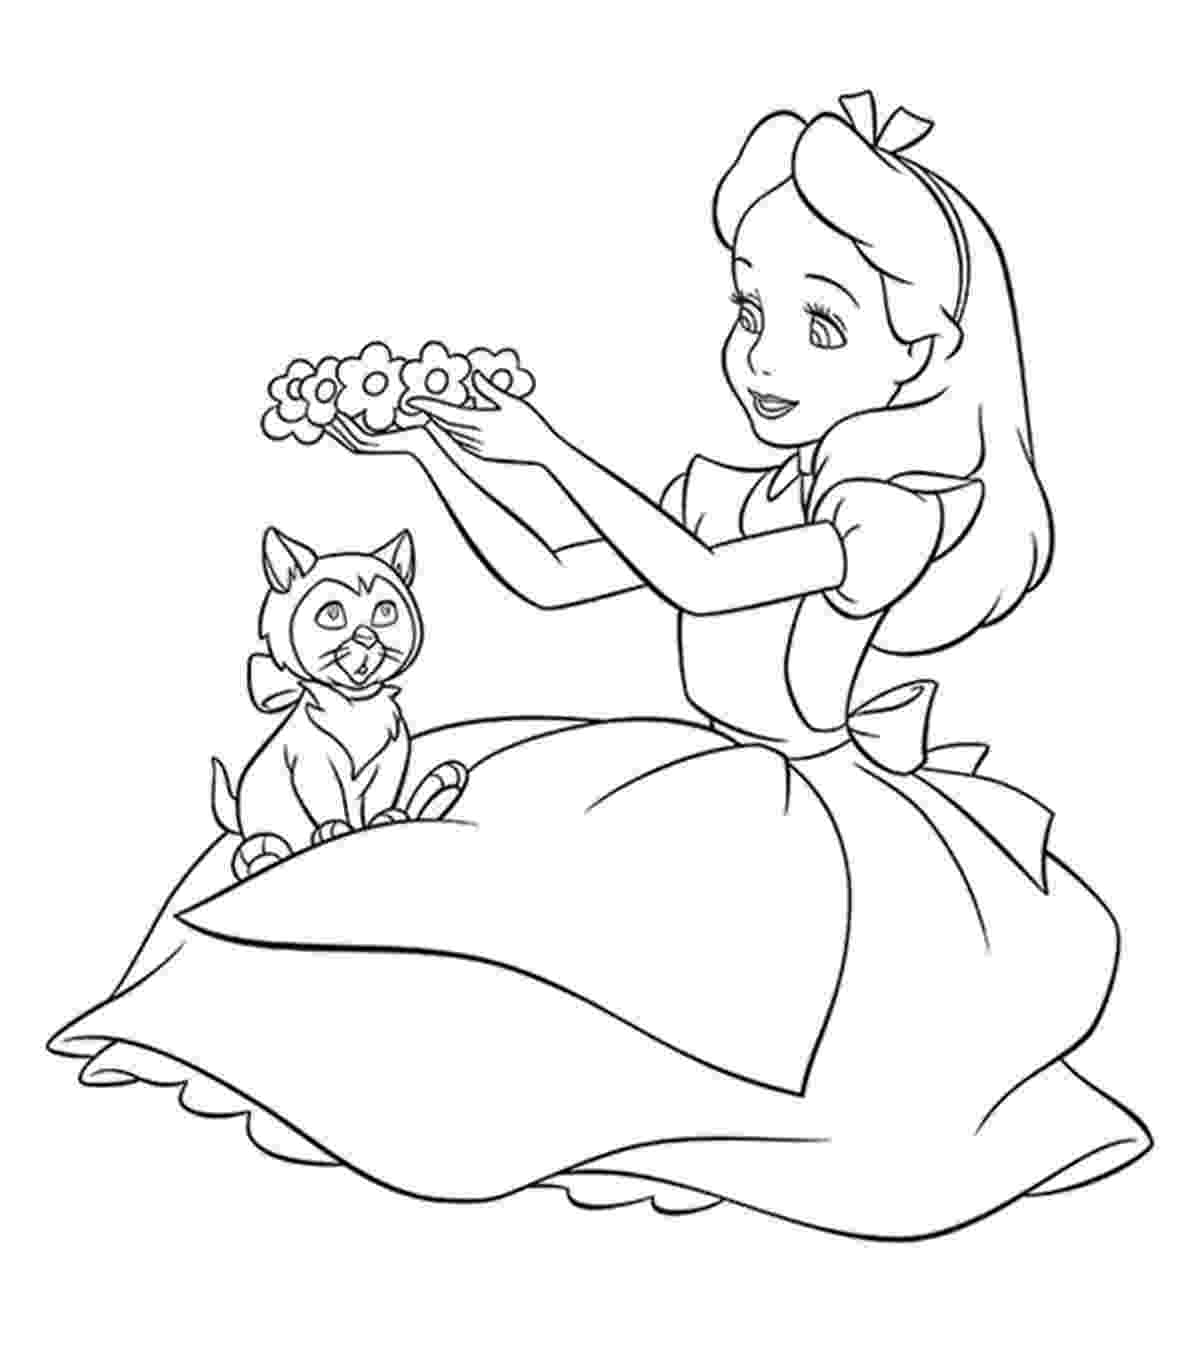 printable coloring pages for disney princess all disney princesses coloring pages getcoloringpagescom pages coloring for princess disney printable